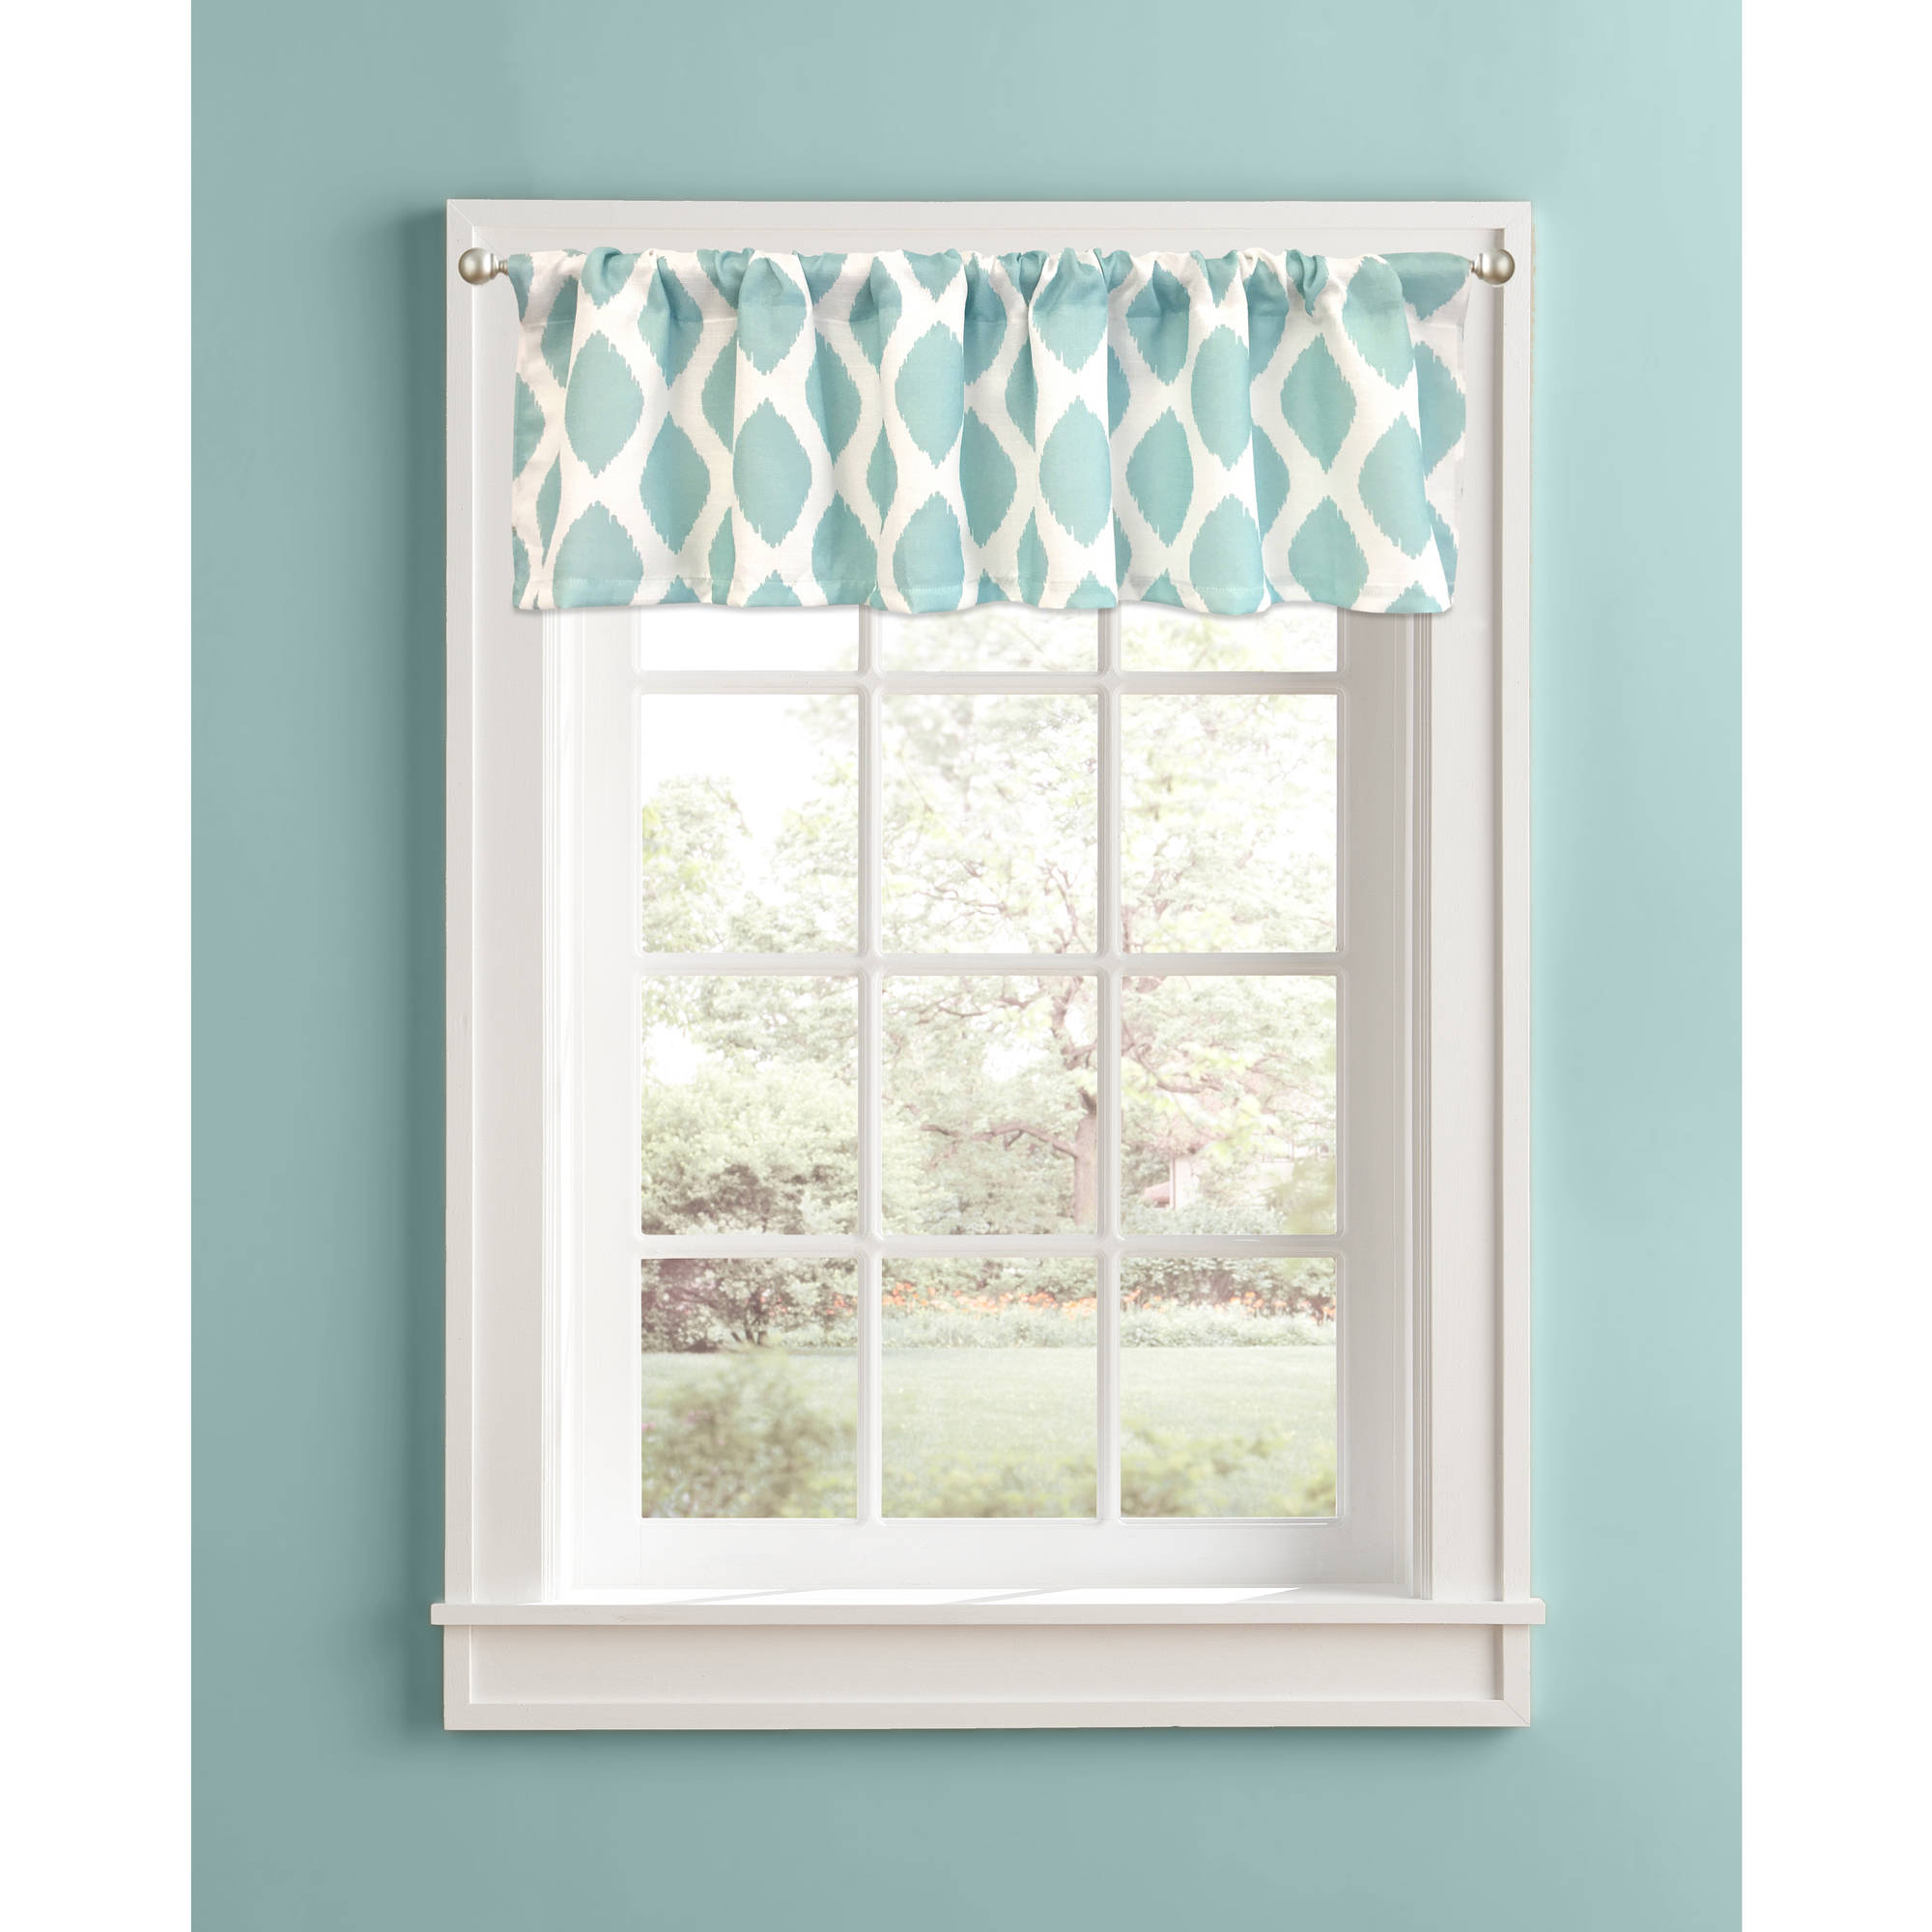 Better Homes and Gardens Aqua Ikat Diamonds Valance - Walmart.com